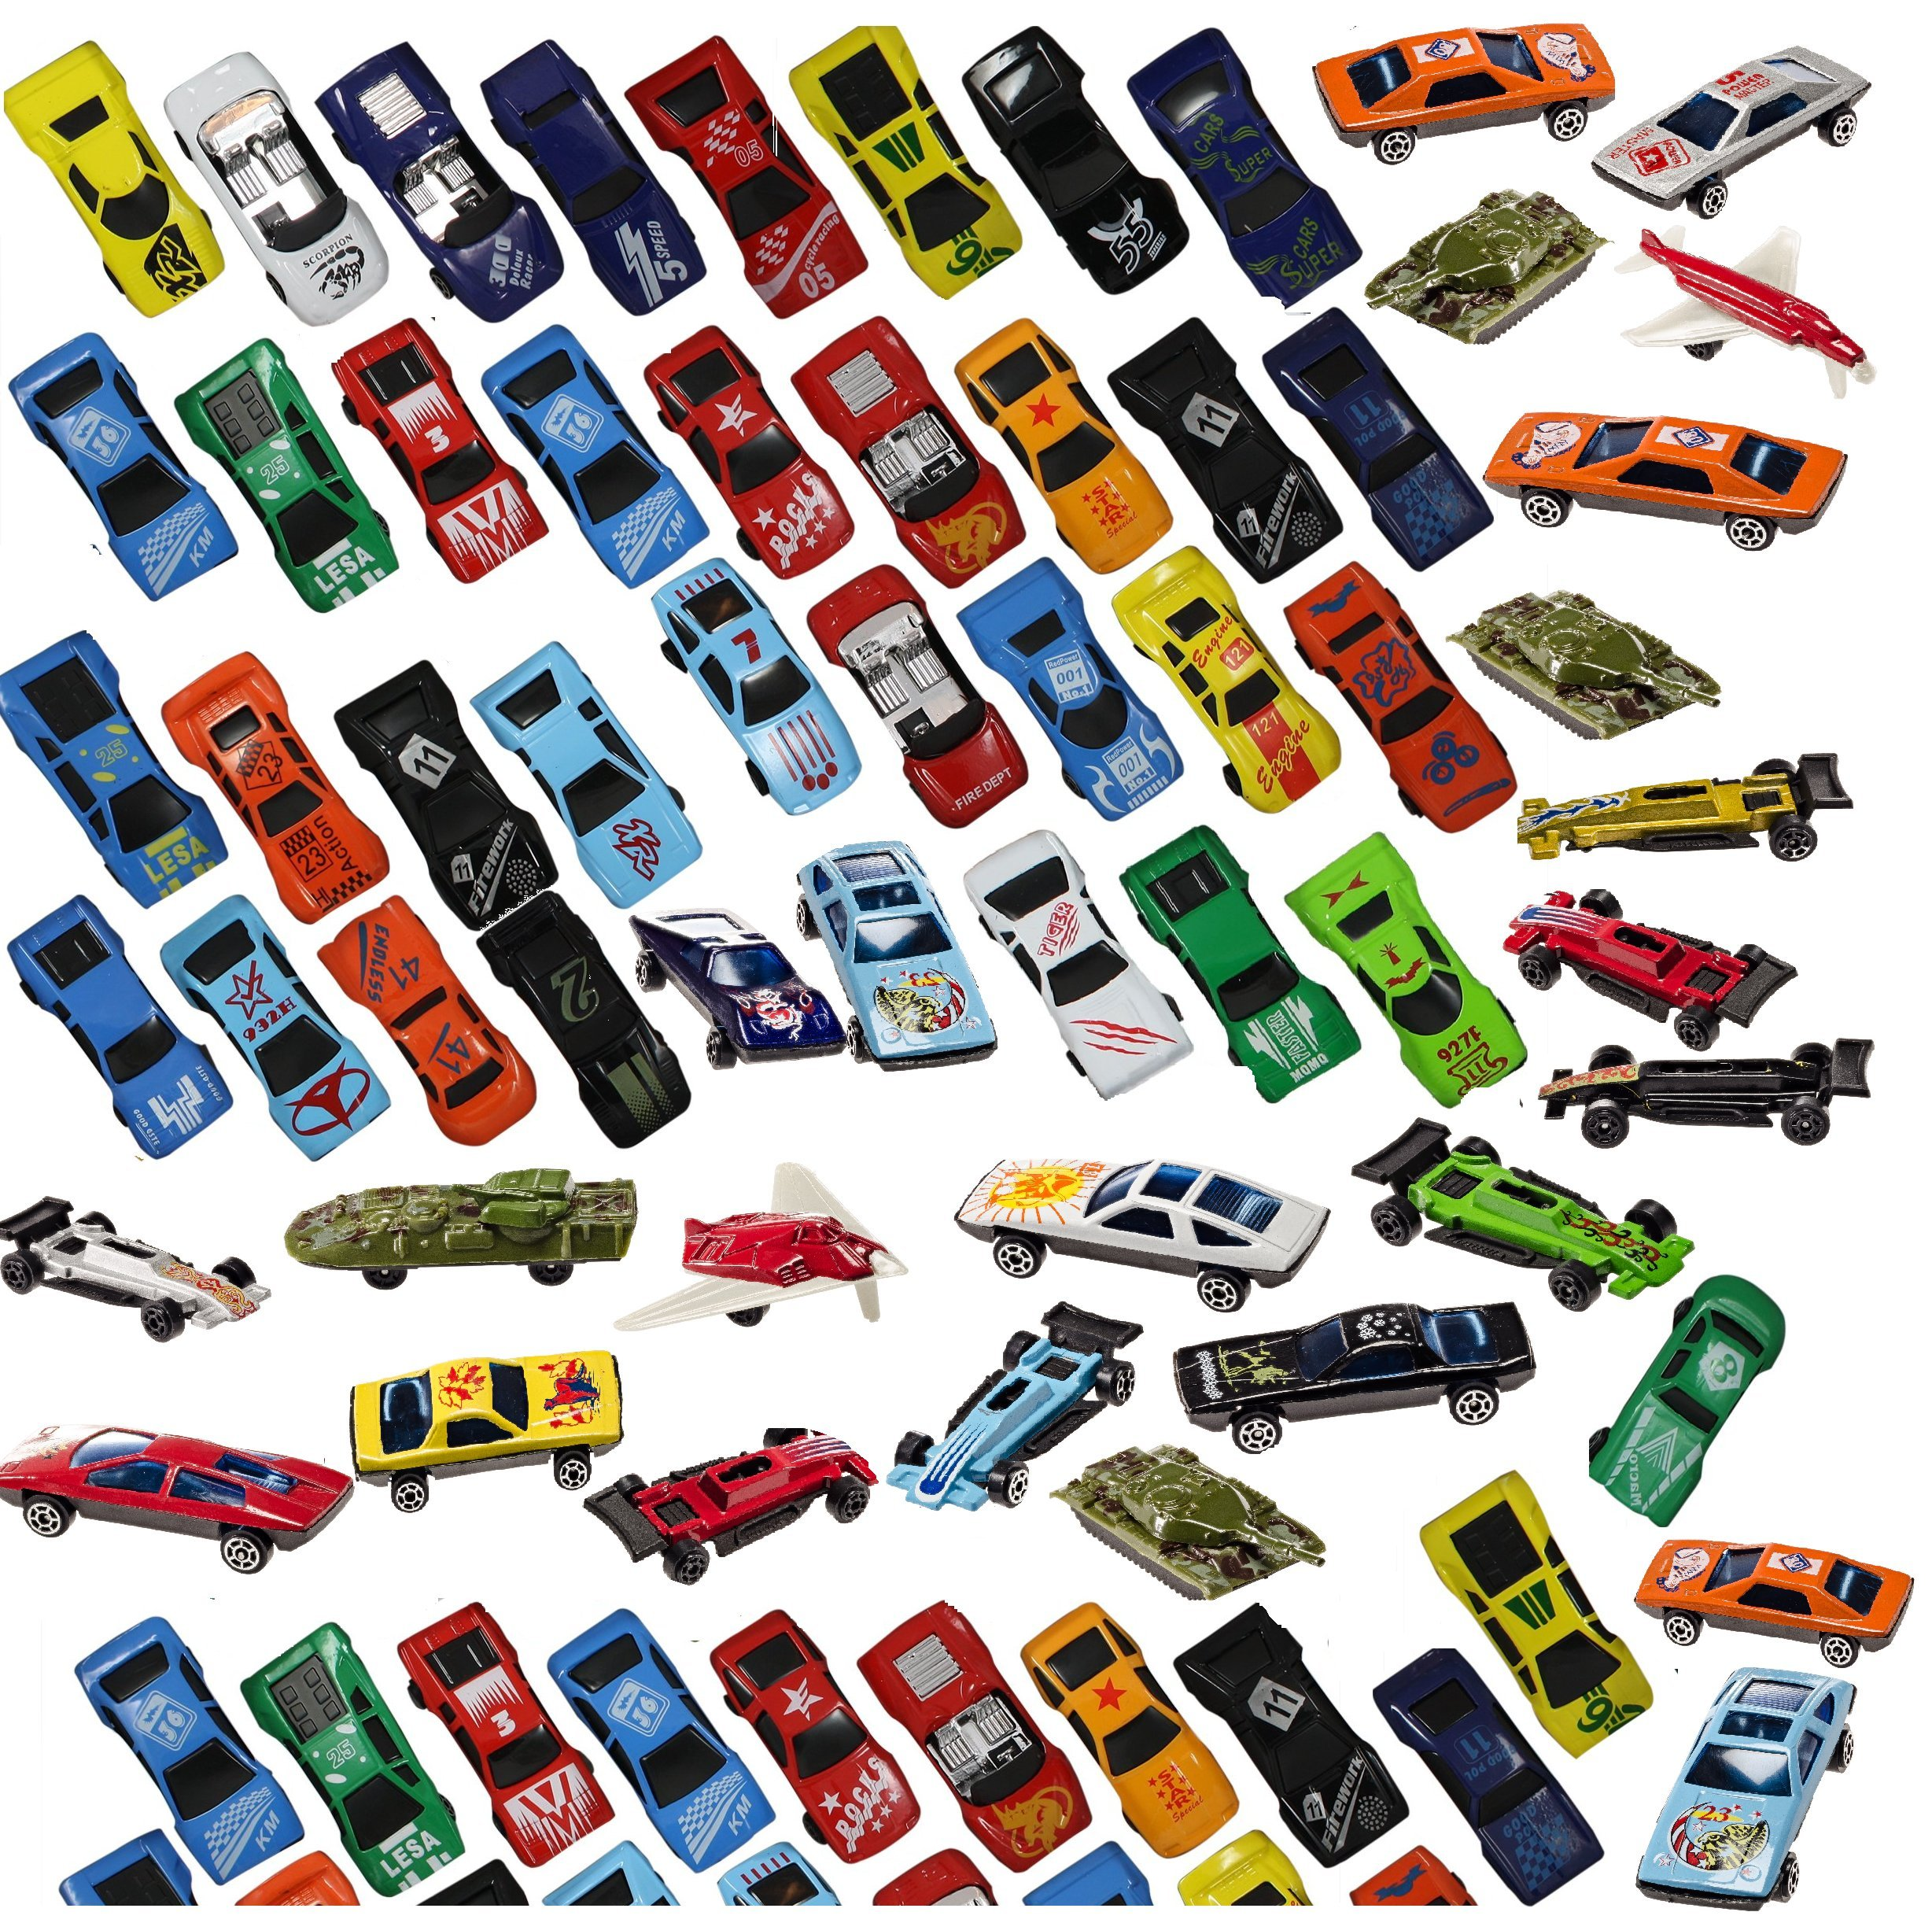 Prextex 100 Pc Cast Toy Cars Party Favors Easter Eggs Filler Or Cake Toppers Stocking